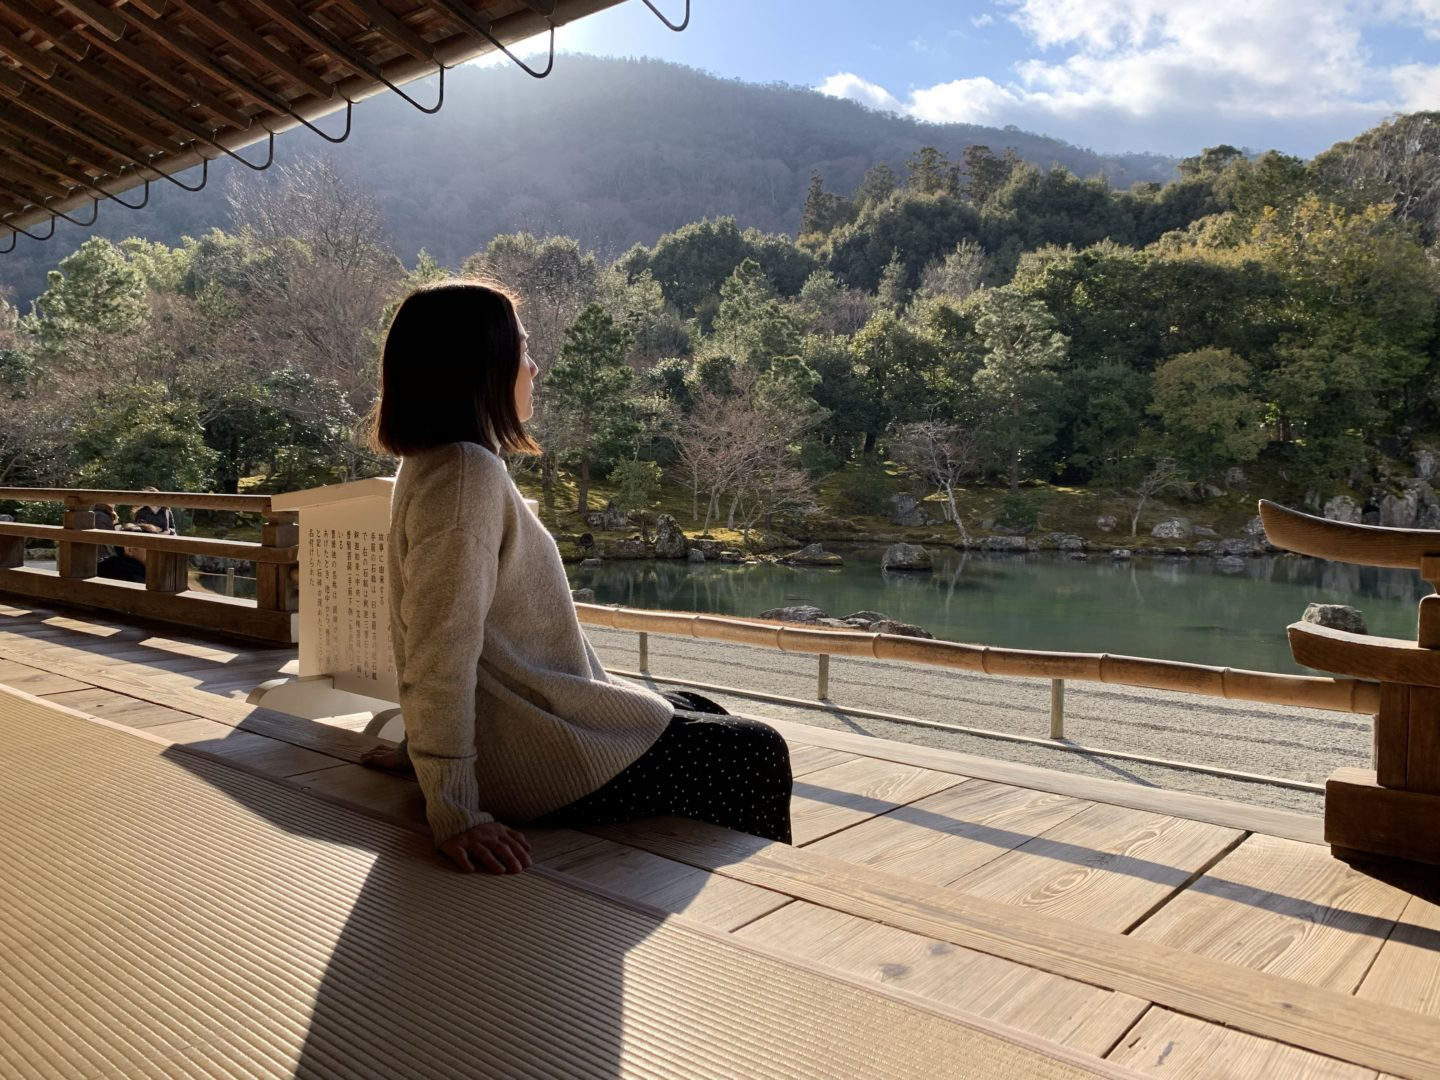 Side profile of girl sitting on the floor looking at the scenery